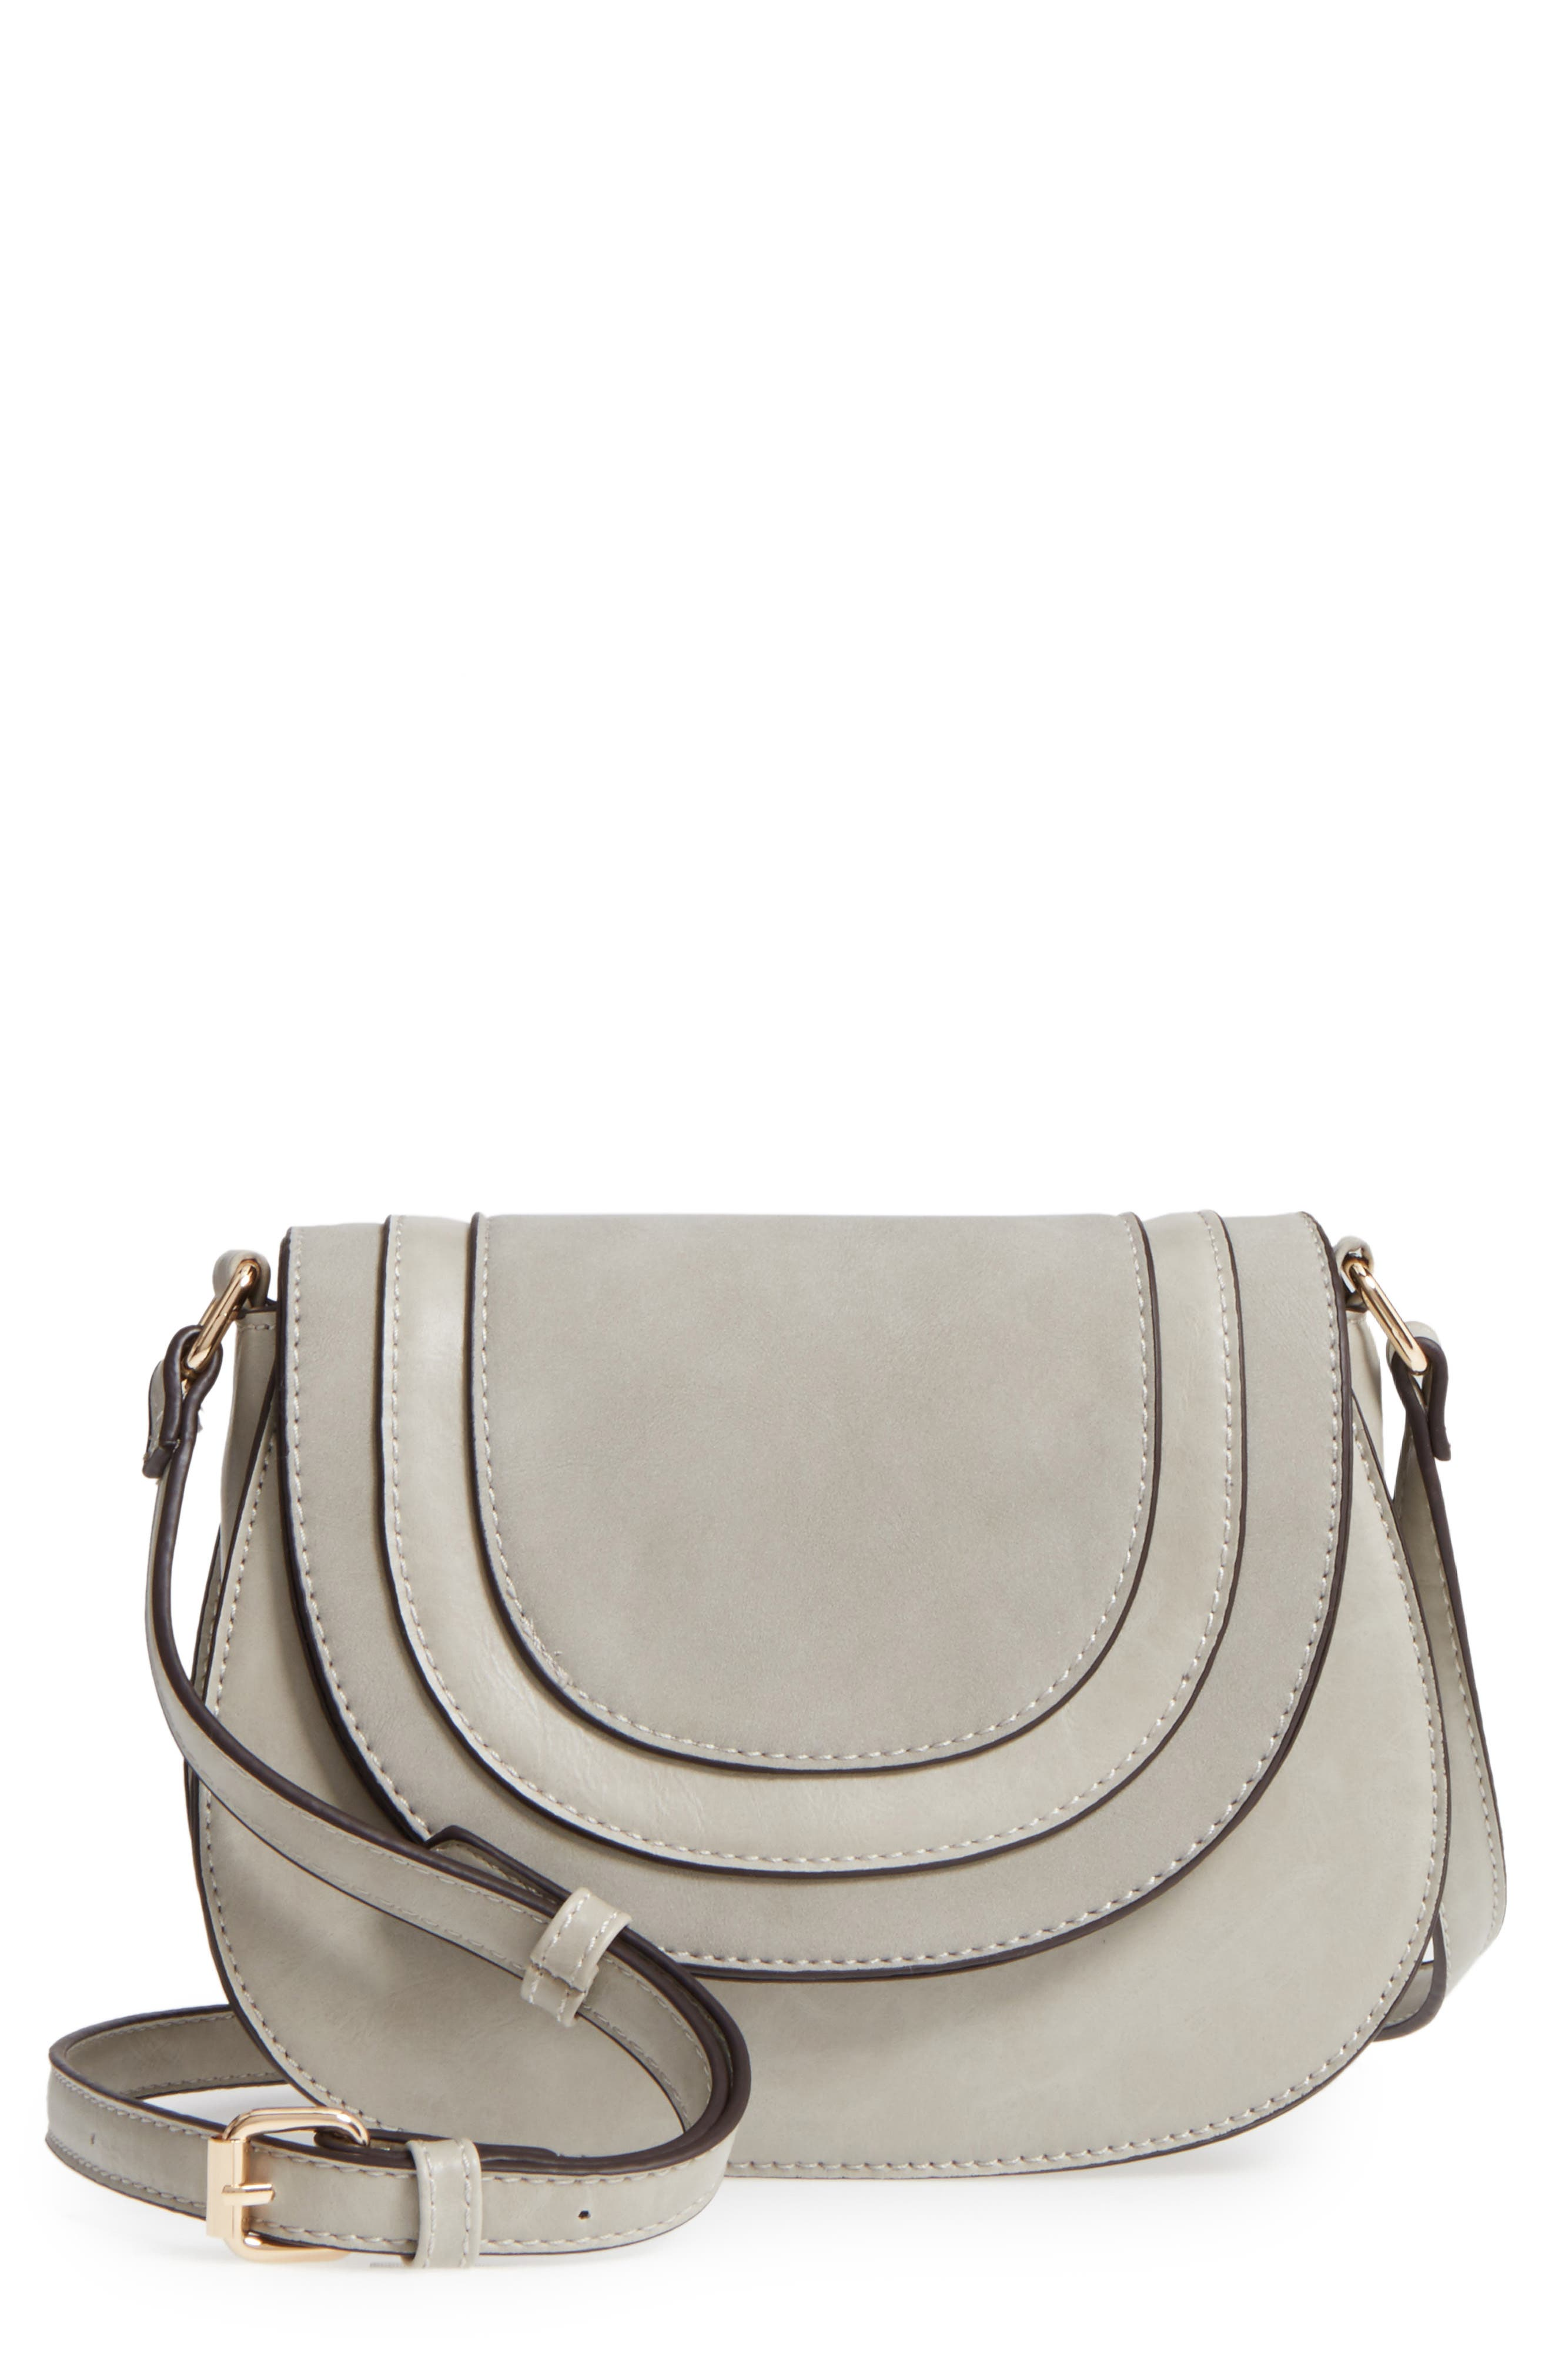 Bryson Faux Leather Crossbody Bag,                         Main,                         color, 025